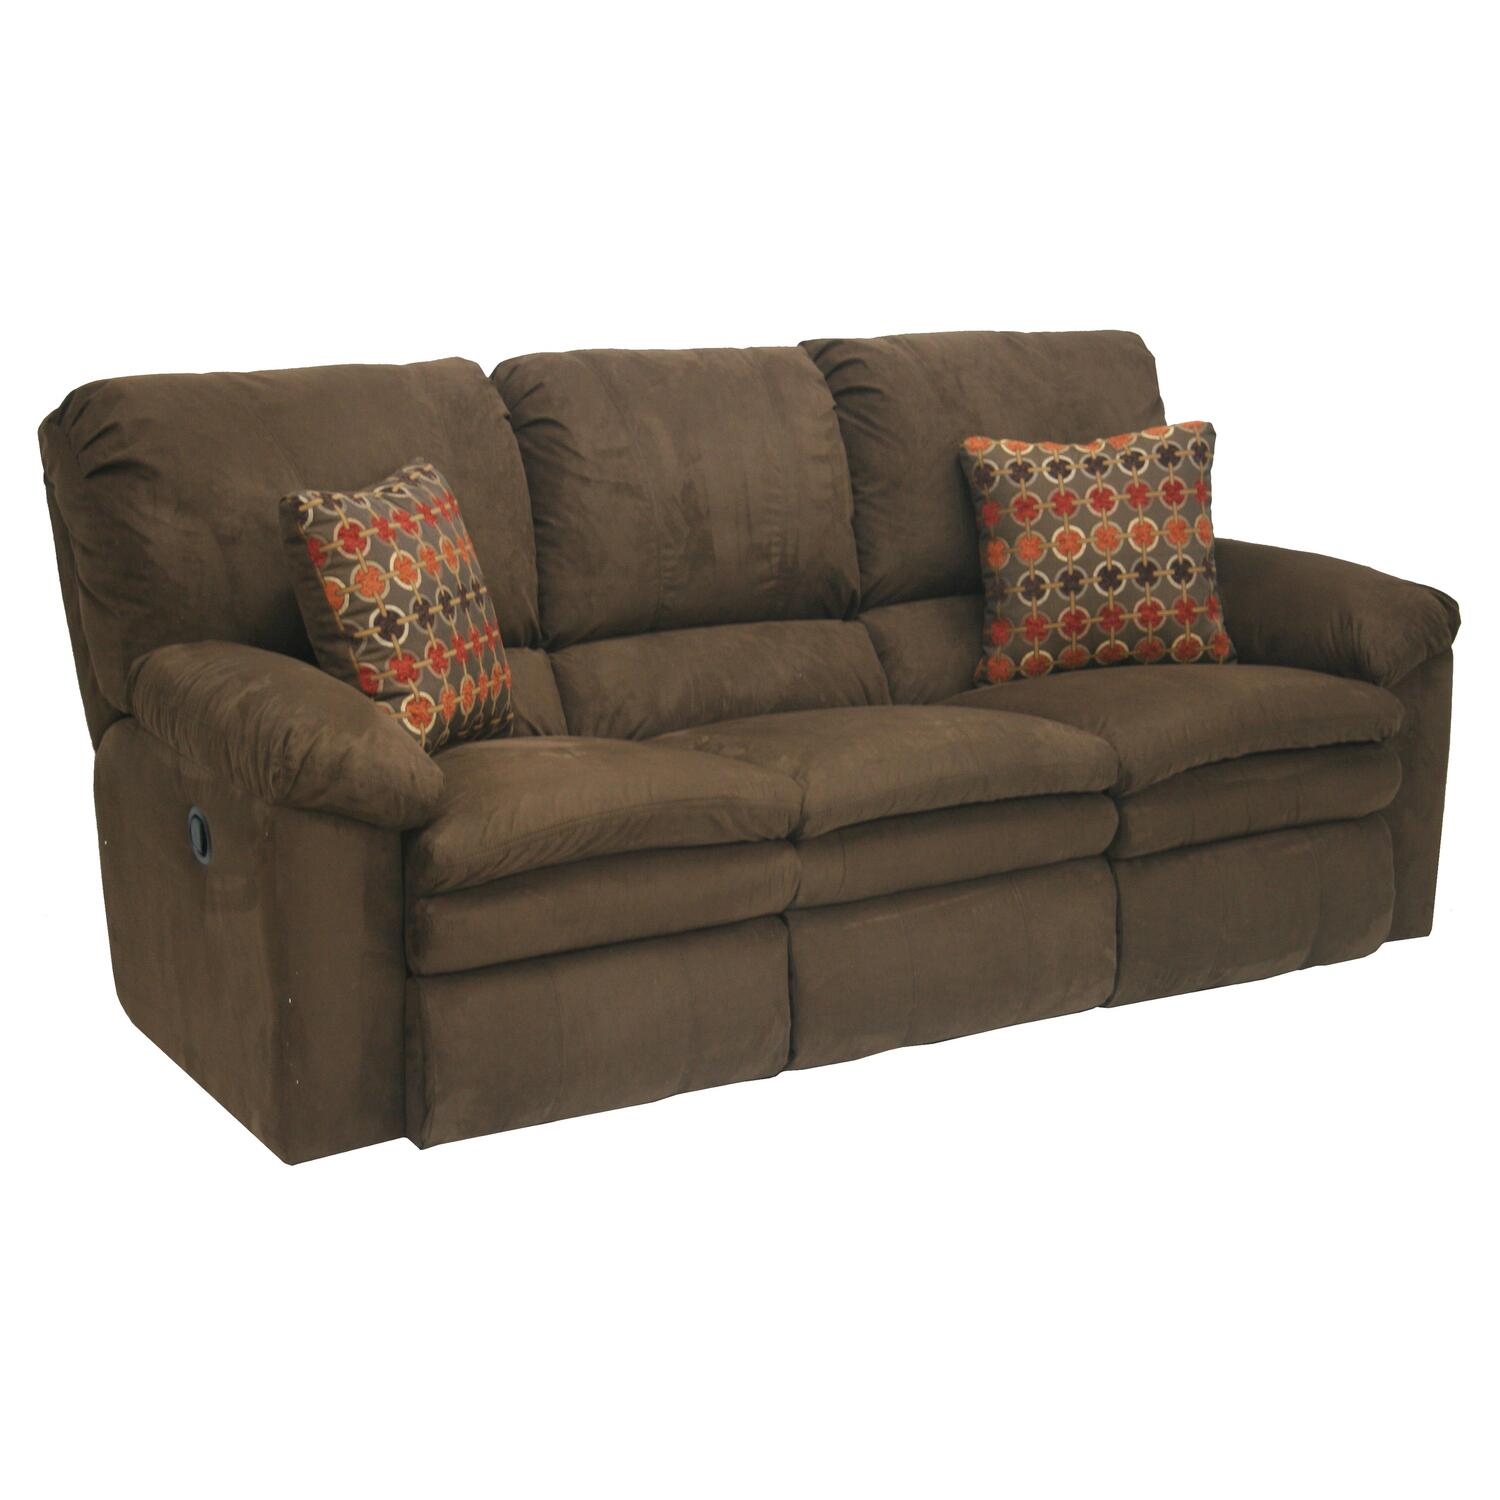 Power Recliner Sofa: power reclining sofas and loveseats